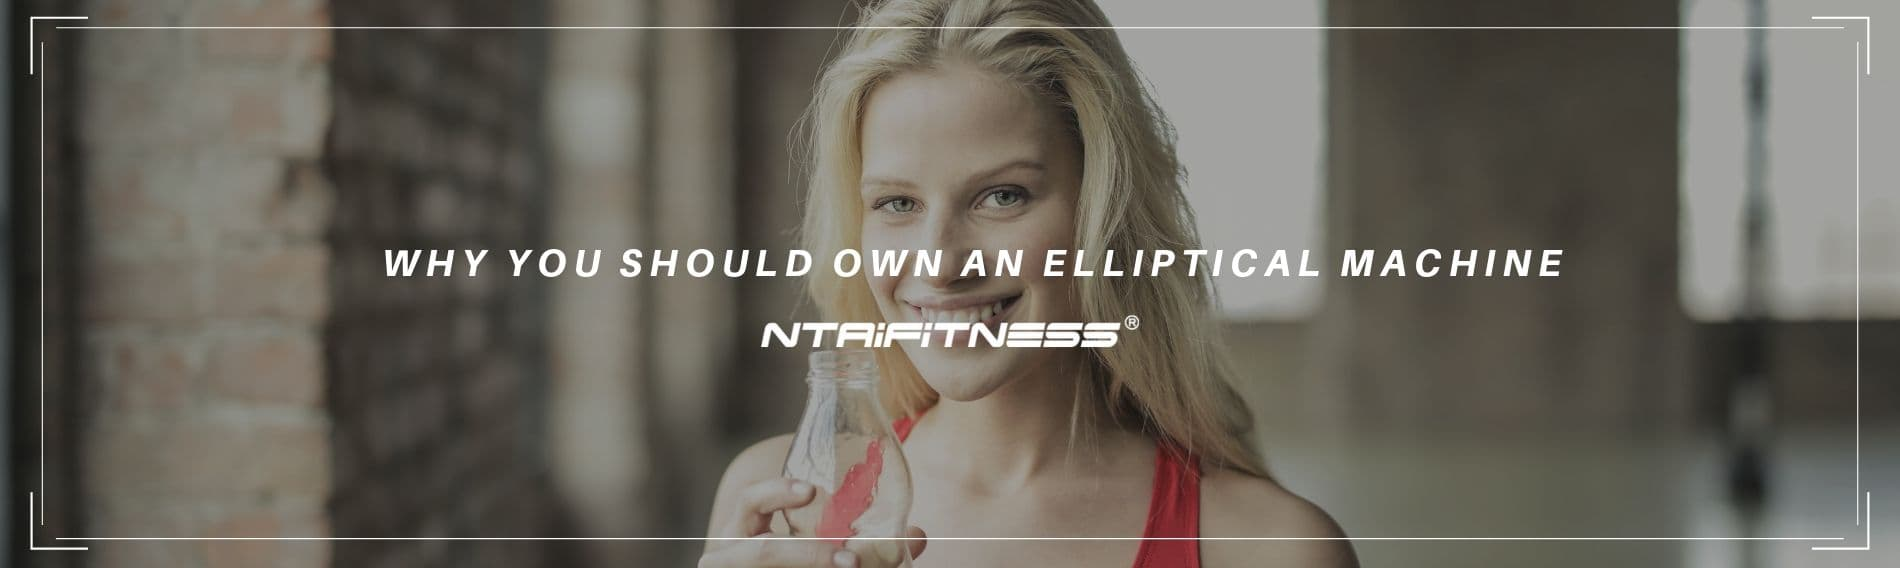 Why You Should Own An Elliptical Machine